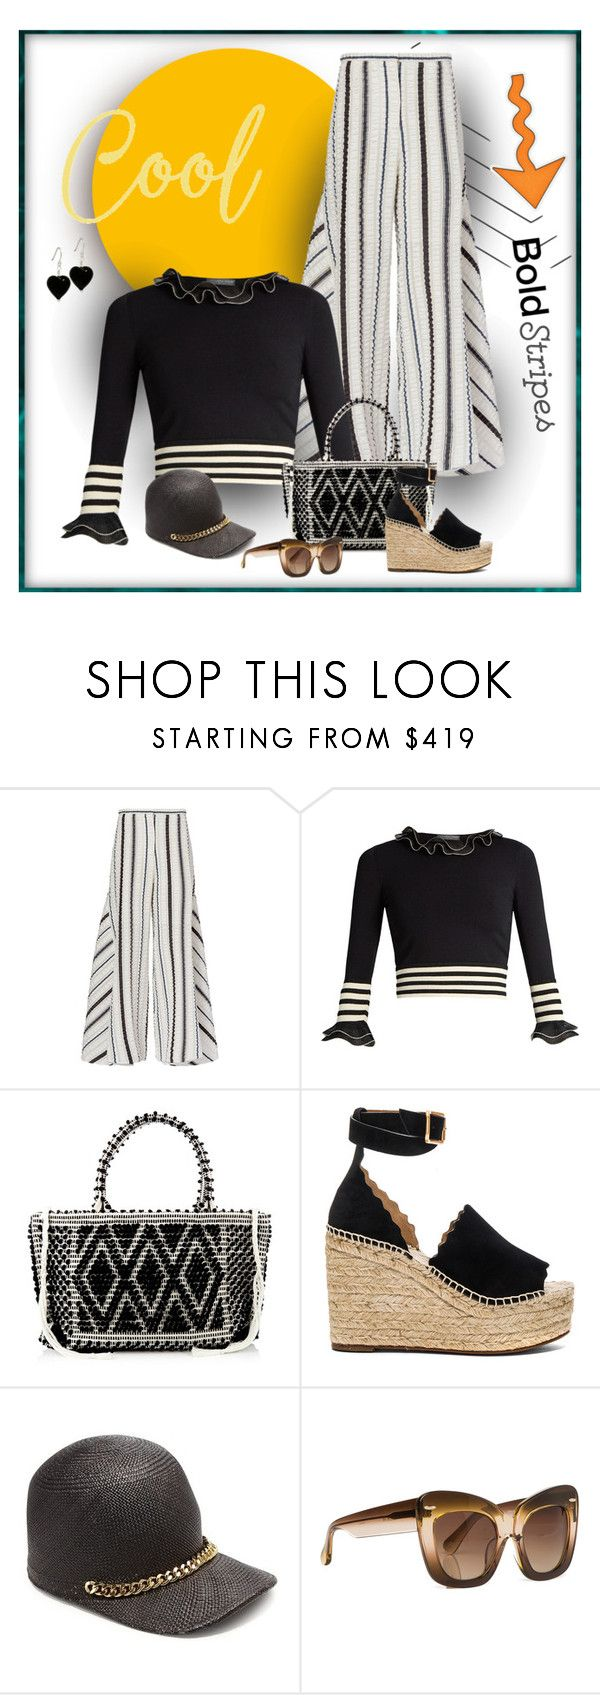 """""""Ruffled Sweet"""" by michelletheaflack ❤ liked on Polyvore featuring Peter Pilotto, Alexander McQueen, Antonello Tedde, Chloé, STELLA McCARTNEY, Erdem, stripedpants, polyvorecontests and styleinsider"""